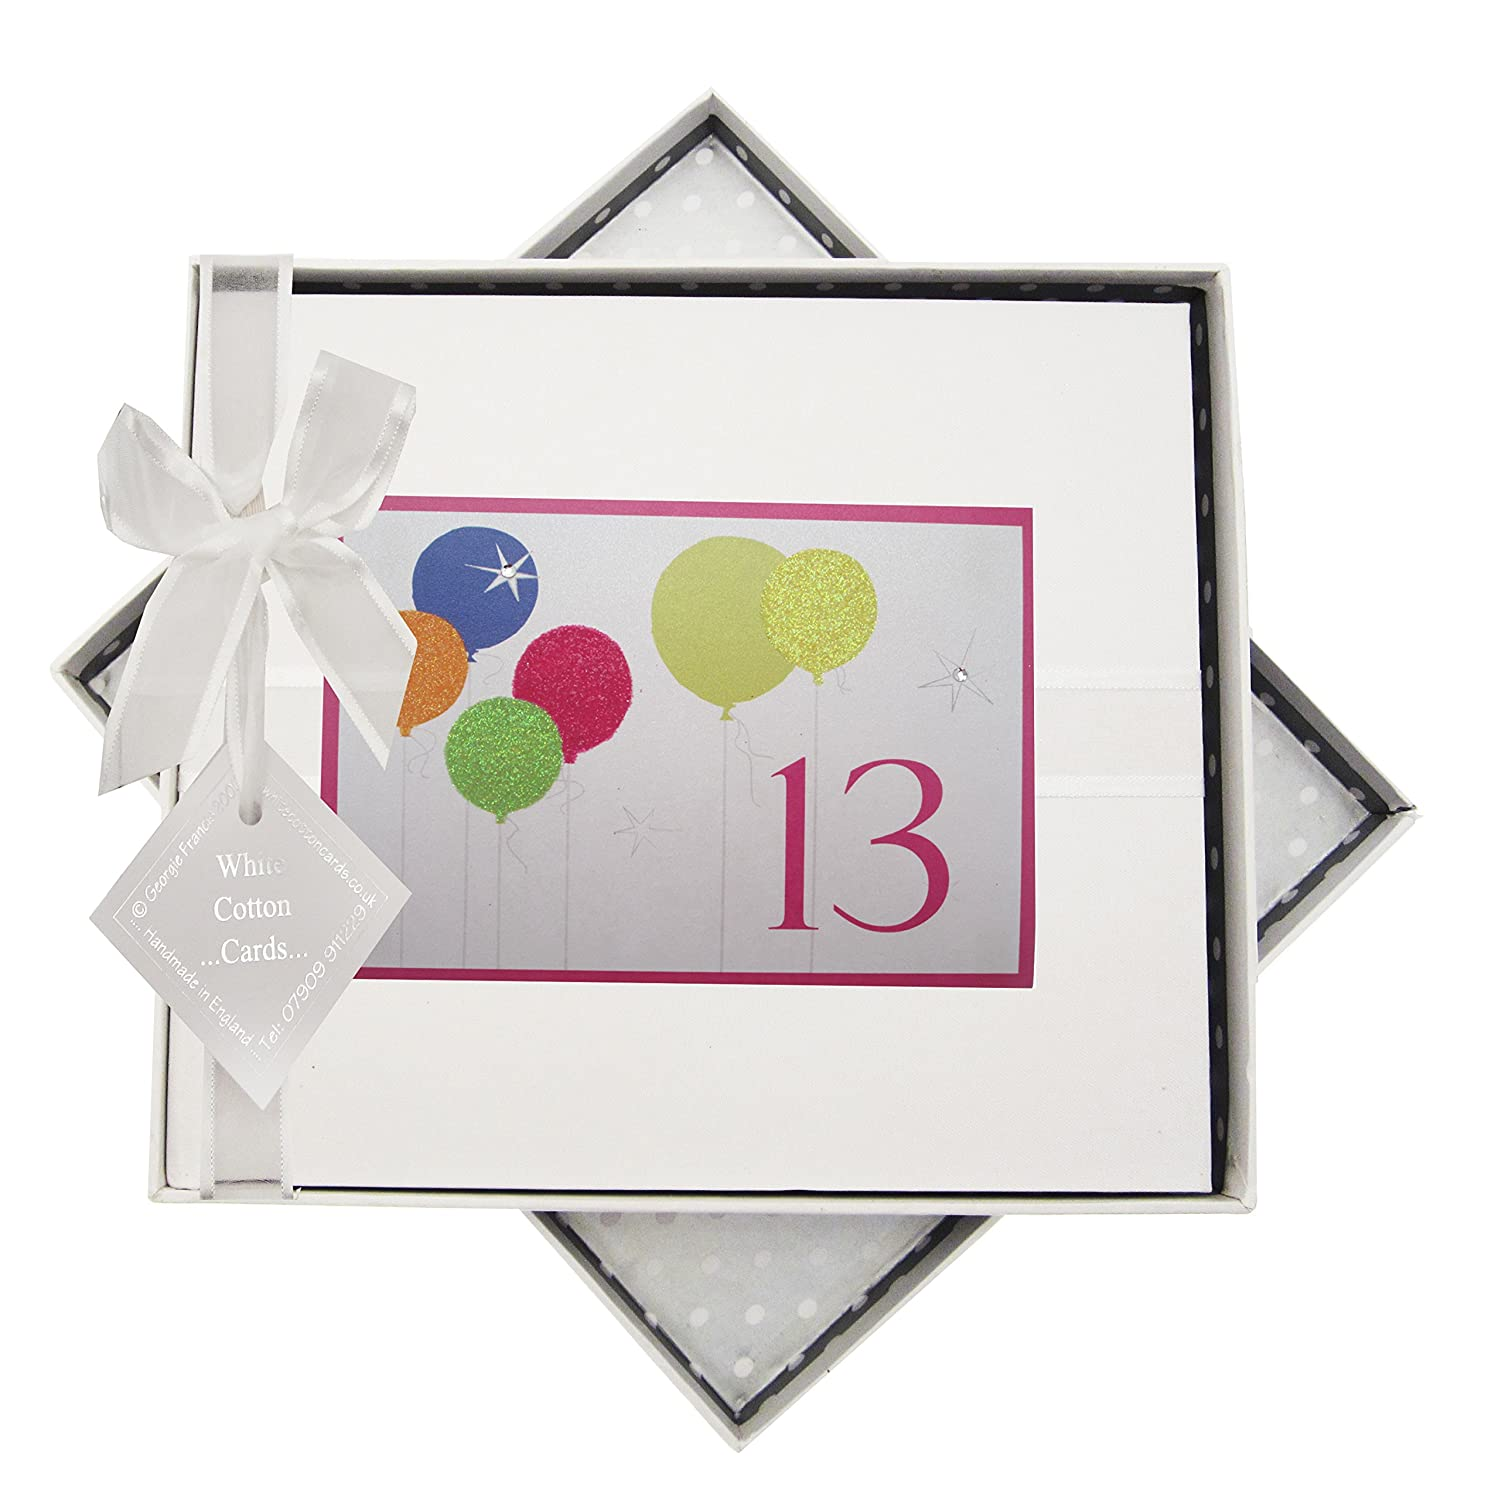 White Cotton Cards 13th Birthday, Guest Book, Neon Glitter Balloons BAL13G